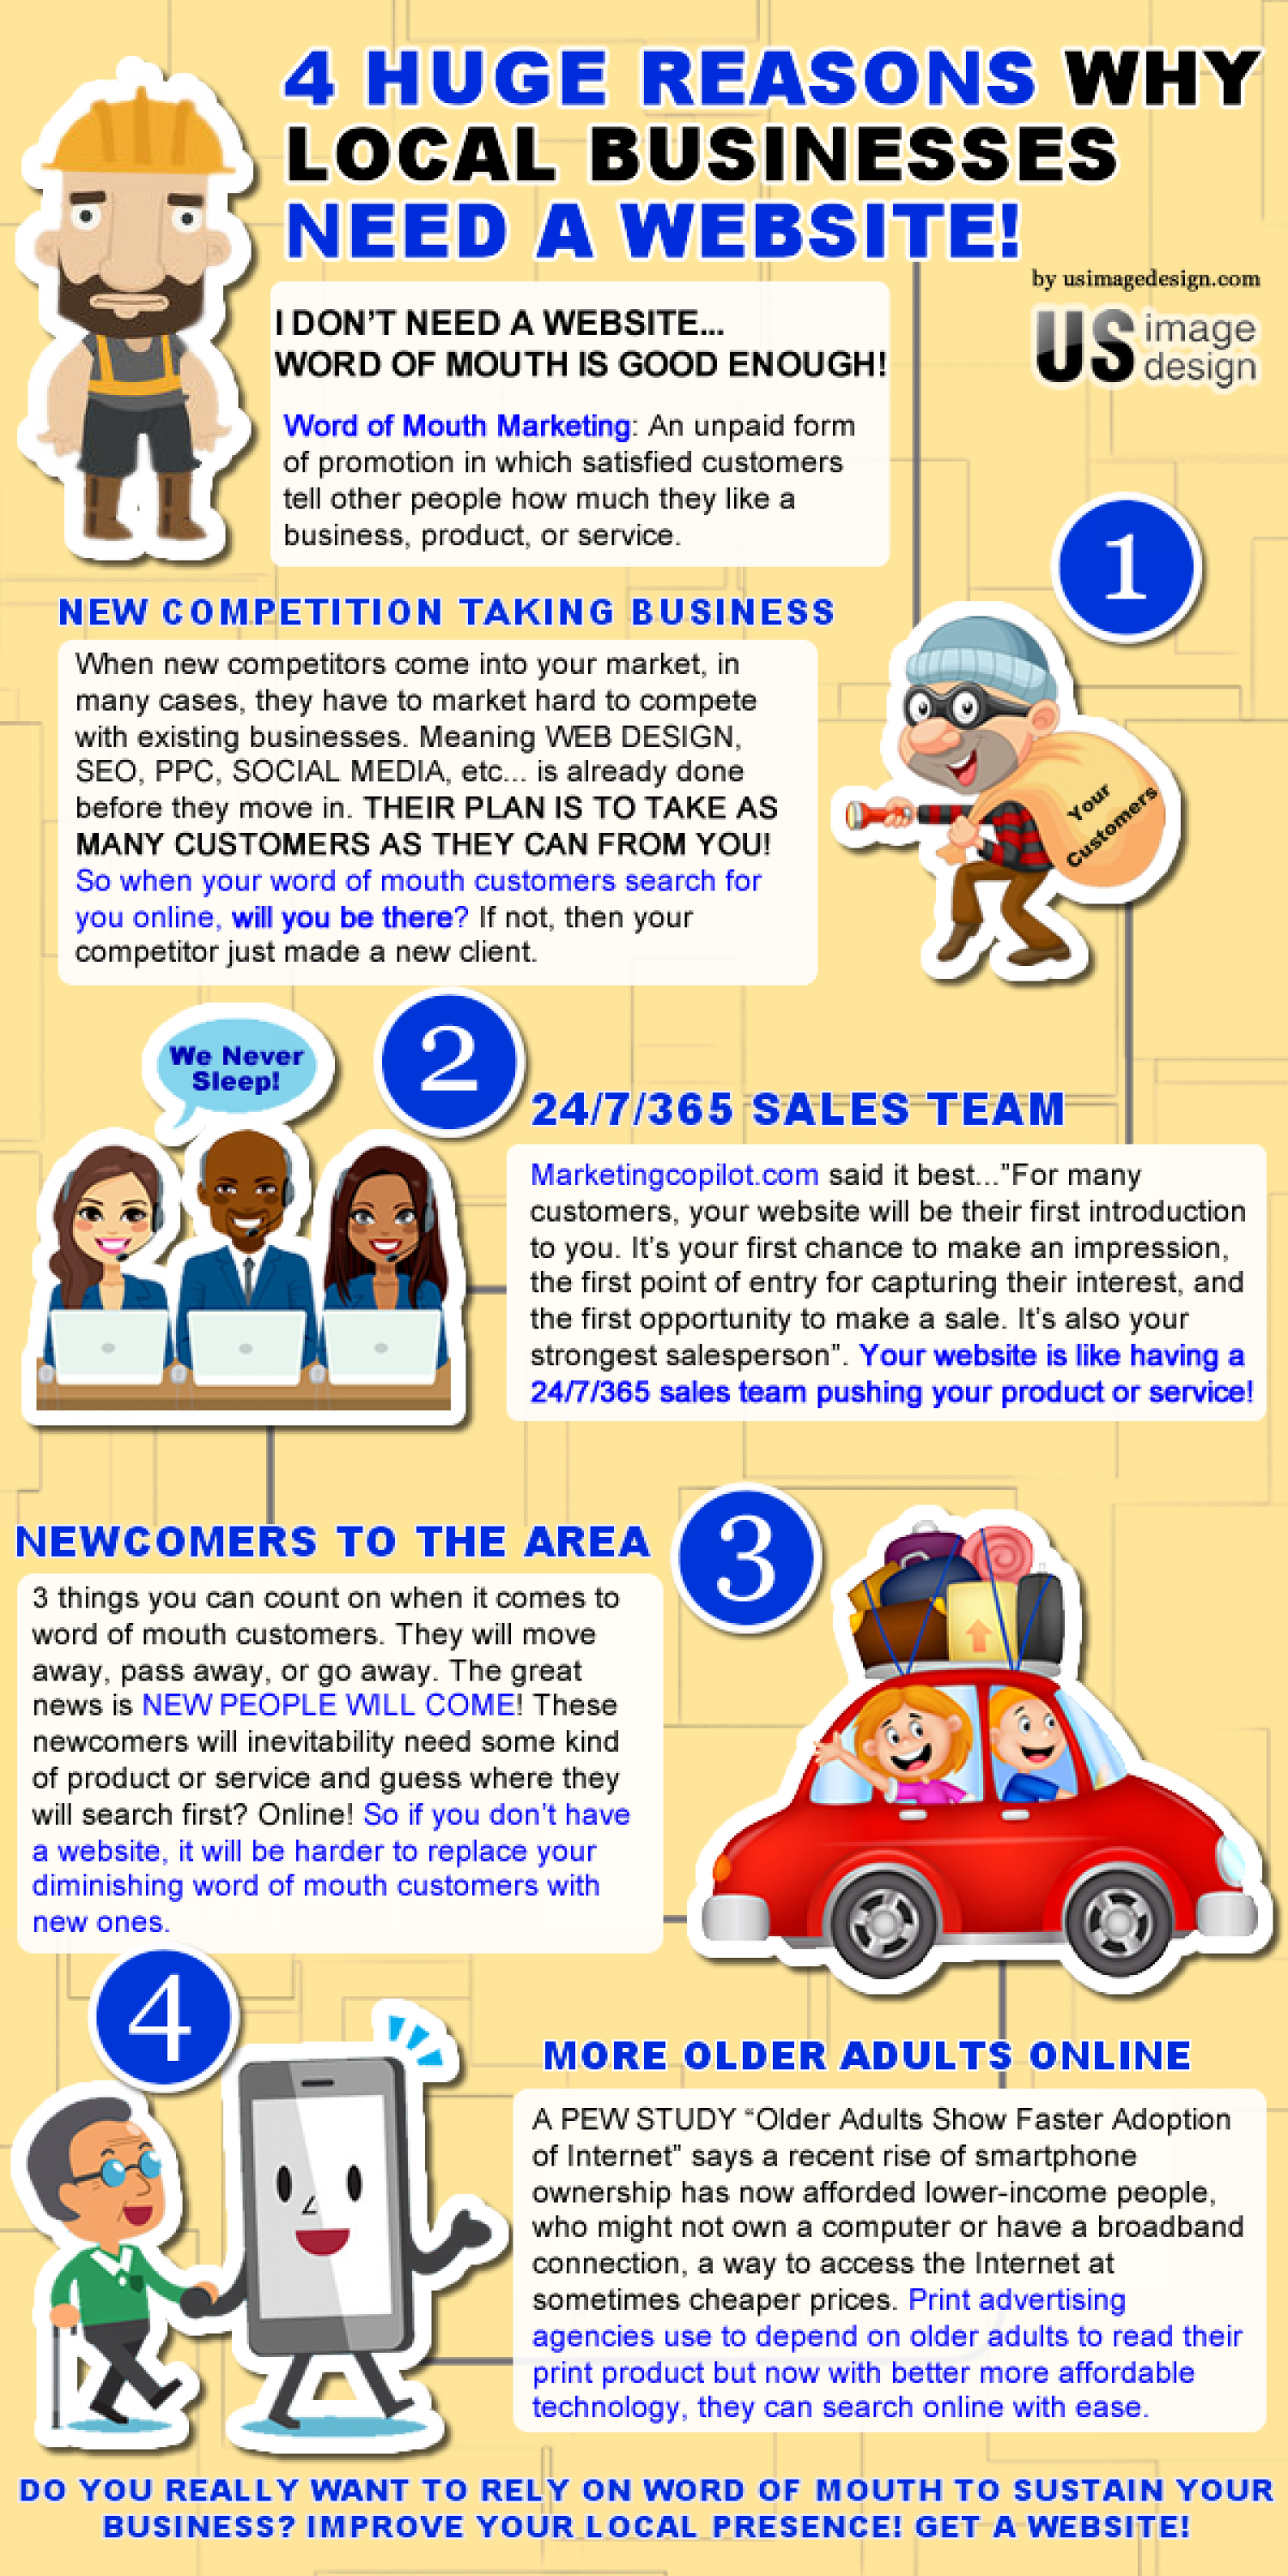 4 HUGE REASONS WHY LOCAL BUSINESSES NEED A WEBSITE 2017! Infographic